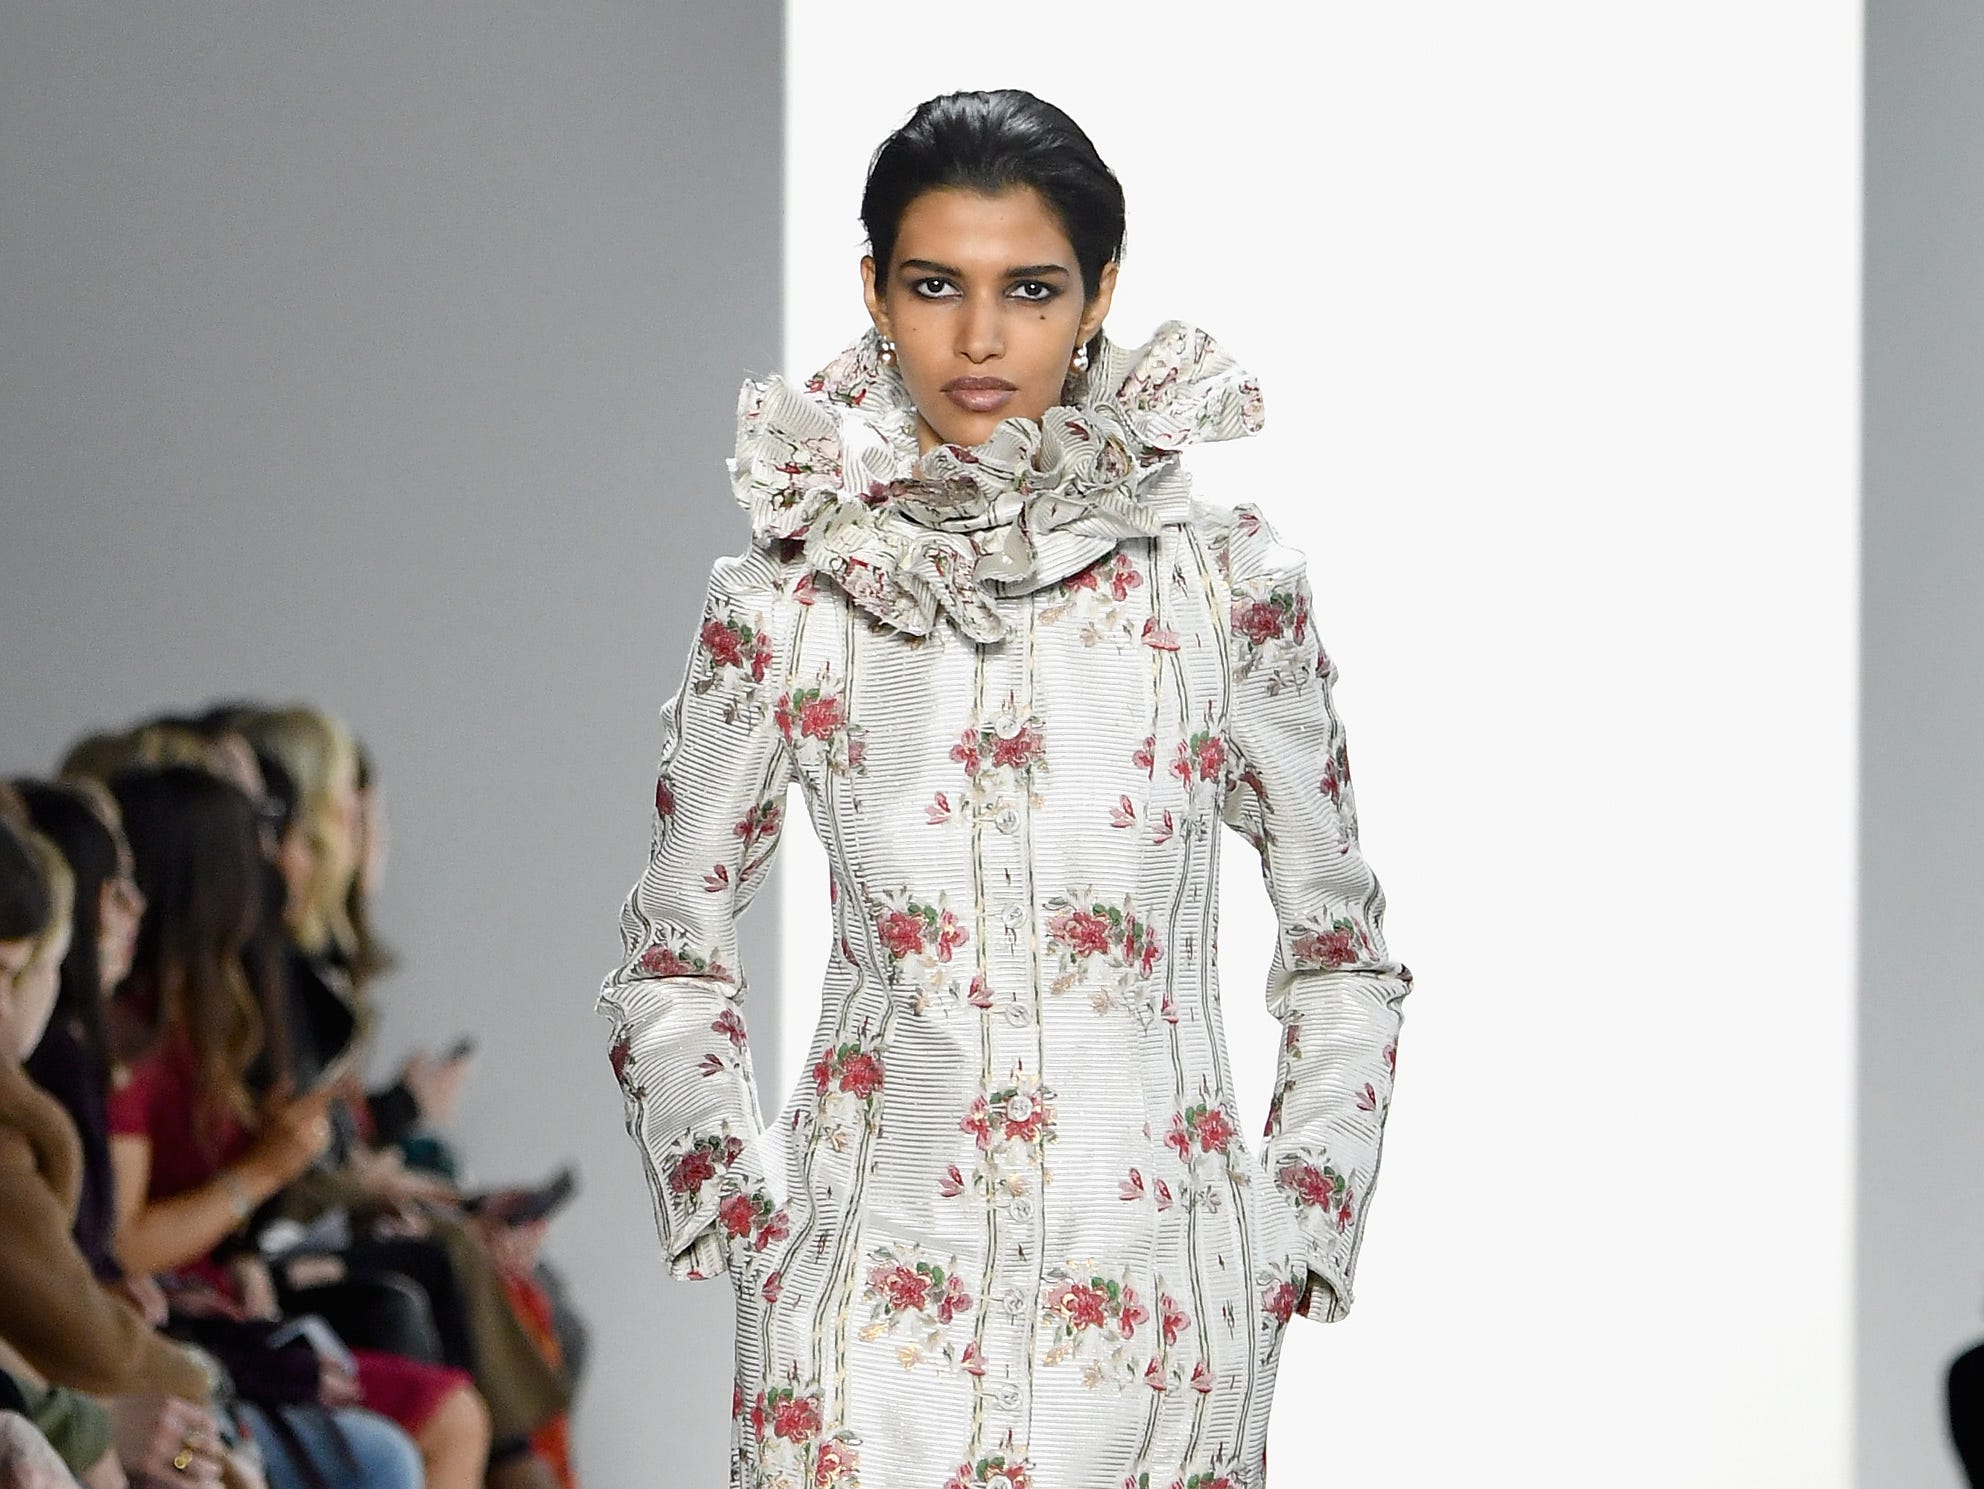 NEW YORK, NY - FEBRUARY 08:  A model walks the runway for the Brock Collection fashion show during New York Fashion Week: The Shows at Gallery I at Spring Studios on February 8, 2019 in New York City.  (Photo by Mike Coppola/Getty Images for NYFW: The Shows) ORG XMIT: 775289359 ORIG FILE ID: 1095510424